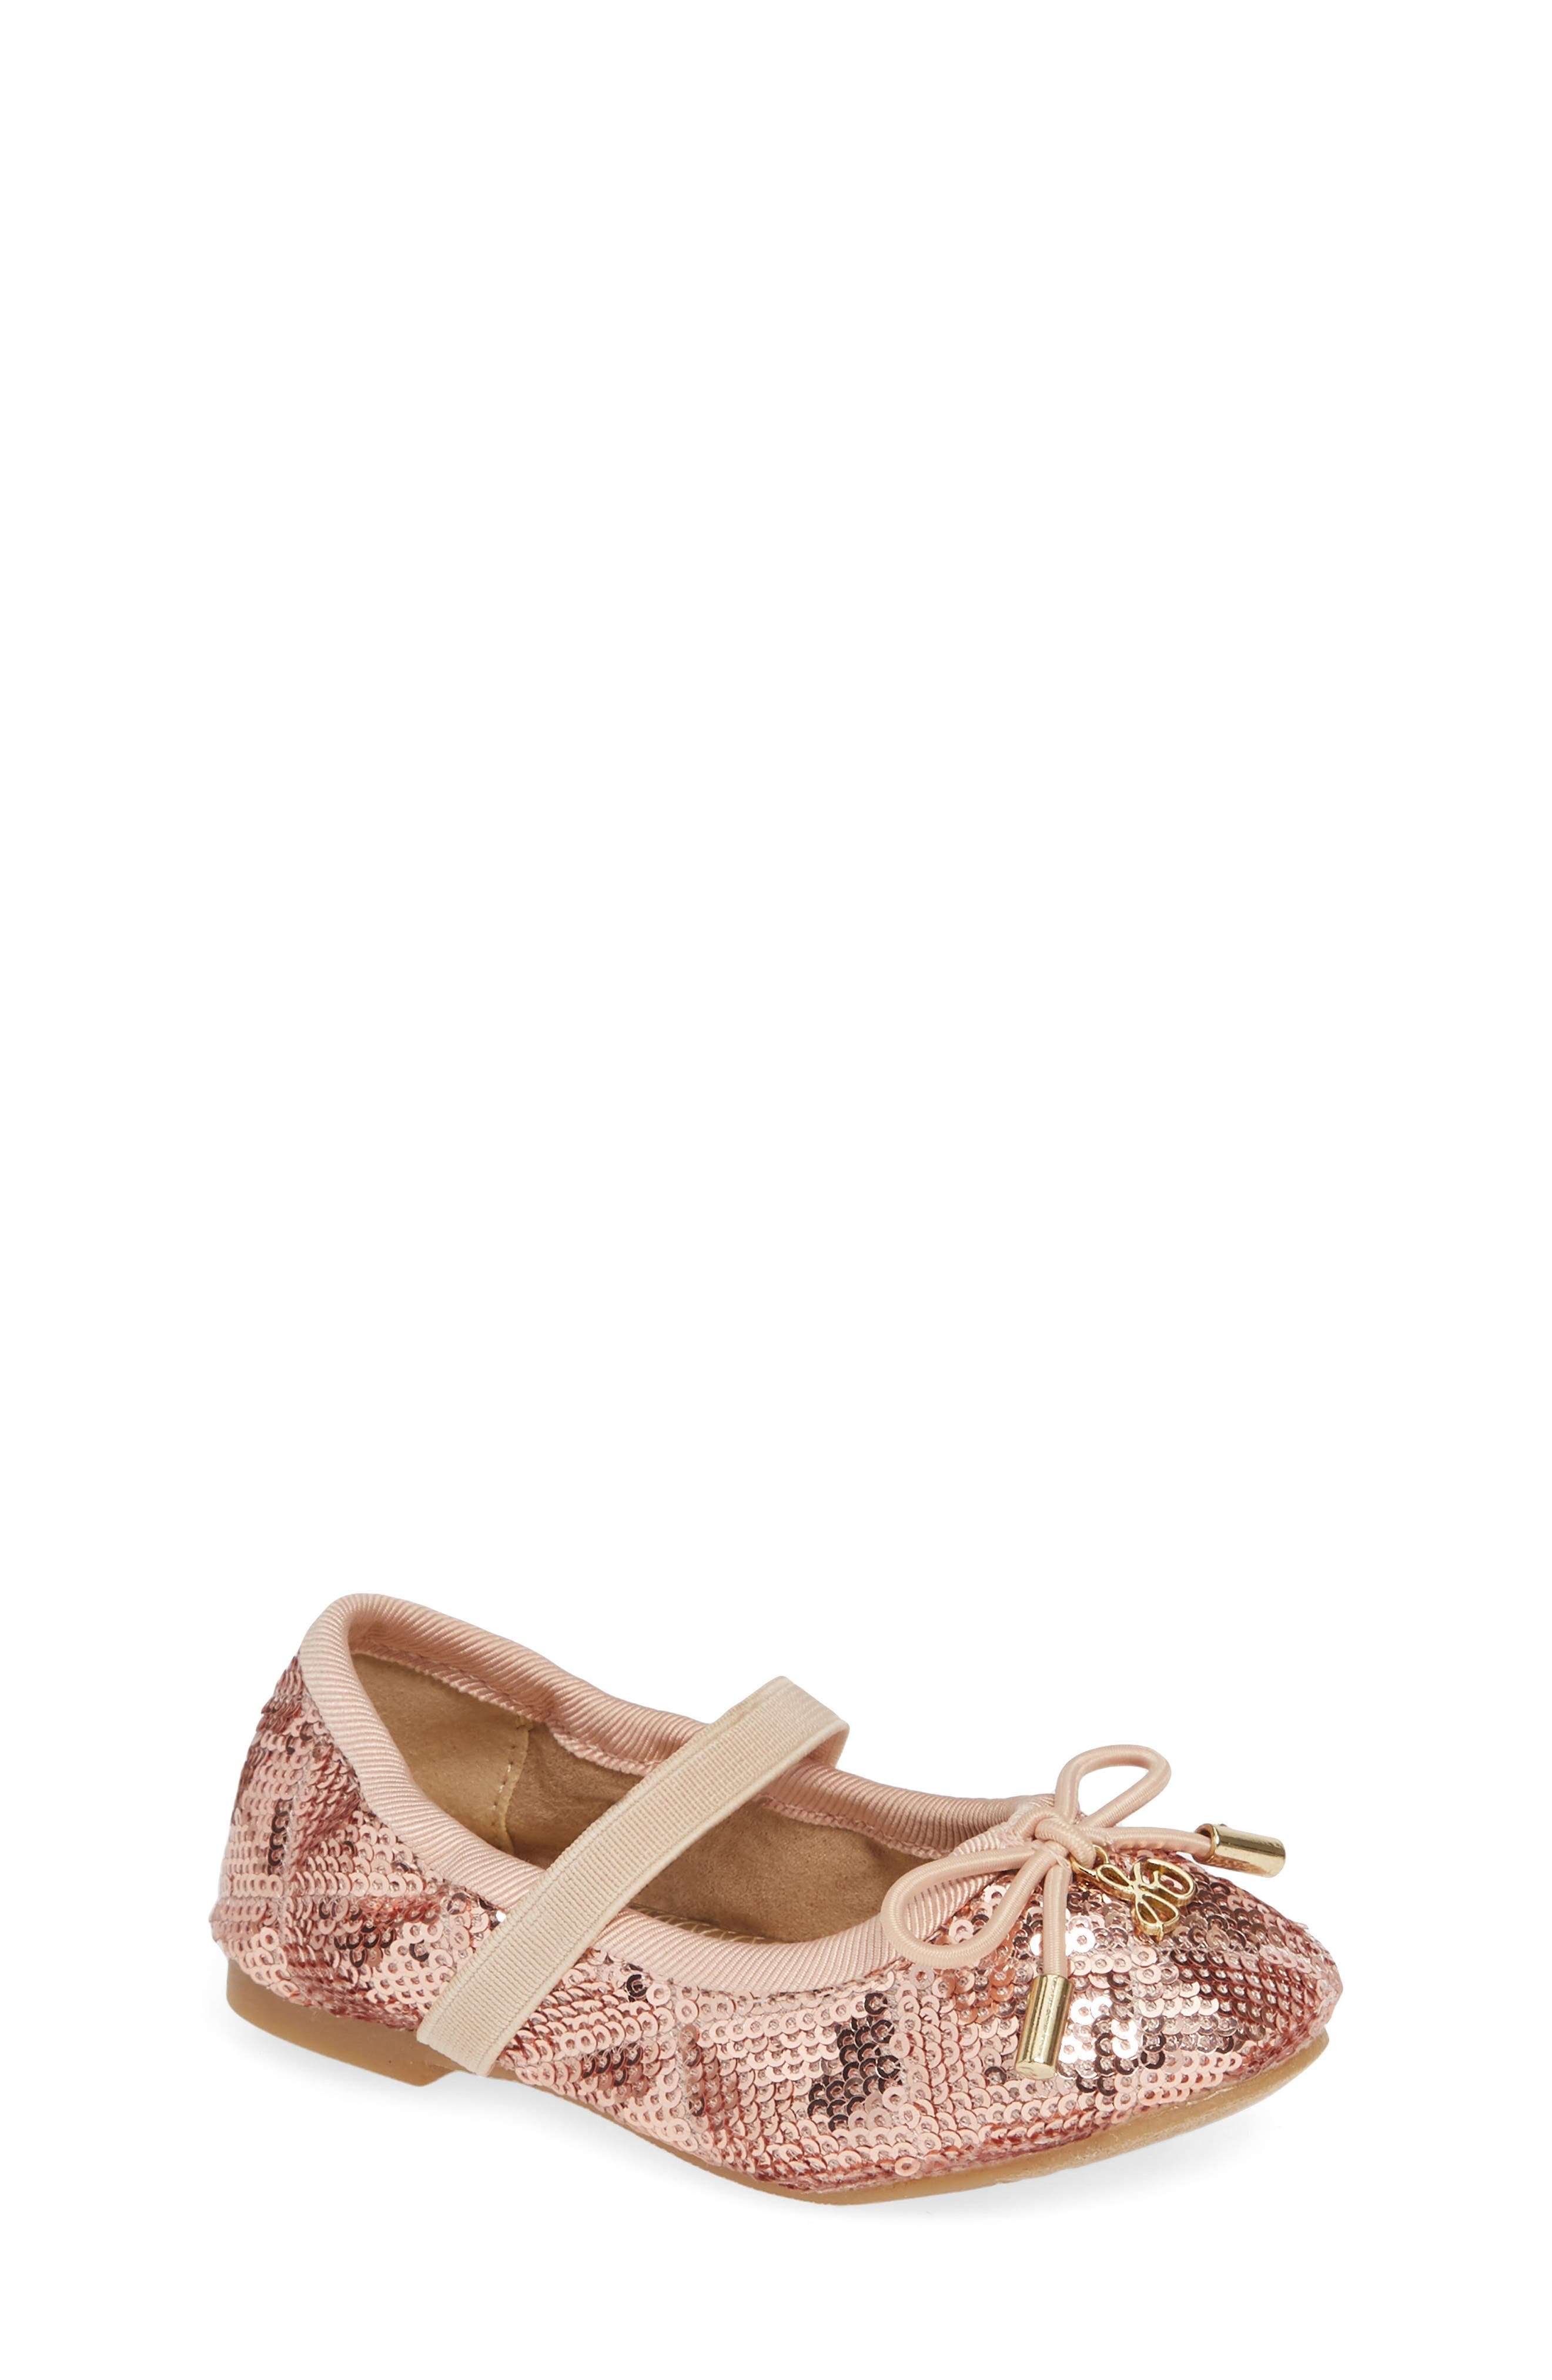 'Felicia' Mary Jane Ballet Flat,                         Main,                         color, ROSE GOLD